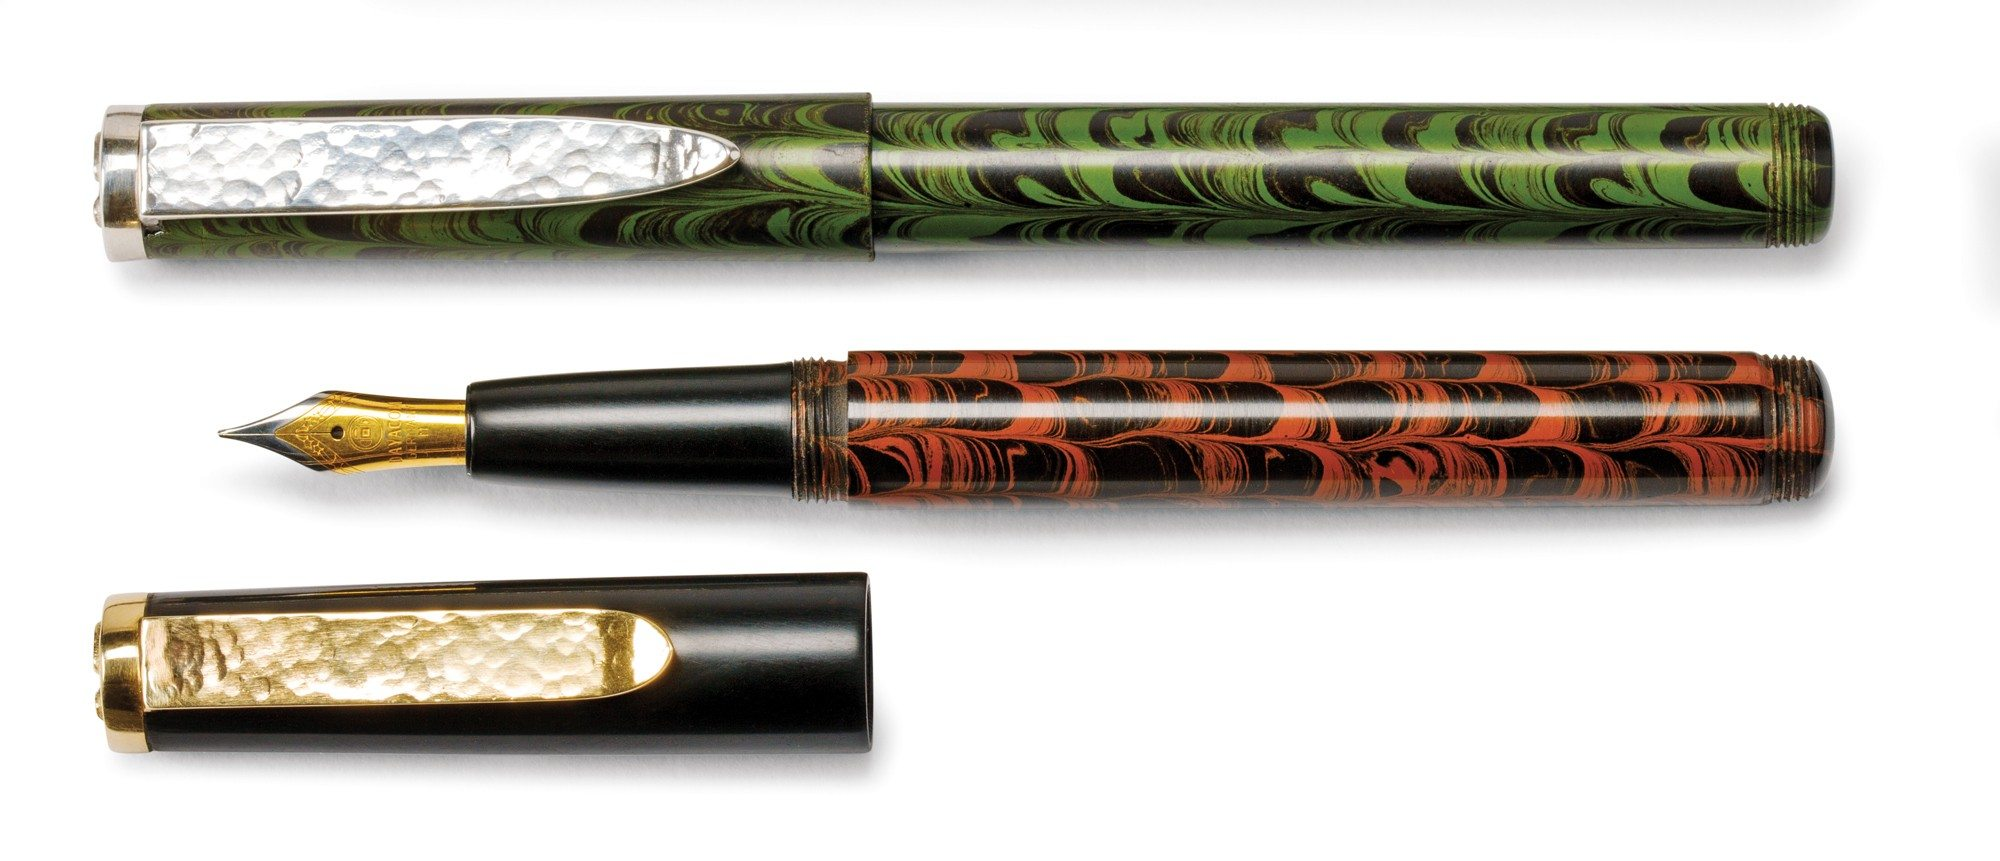 Fountain pens $400 to $550 by Richard Boucher